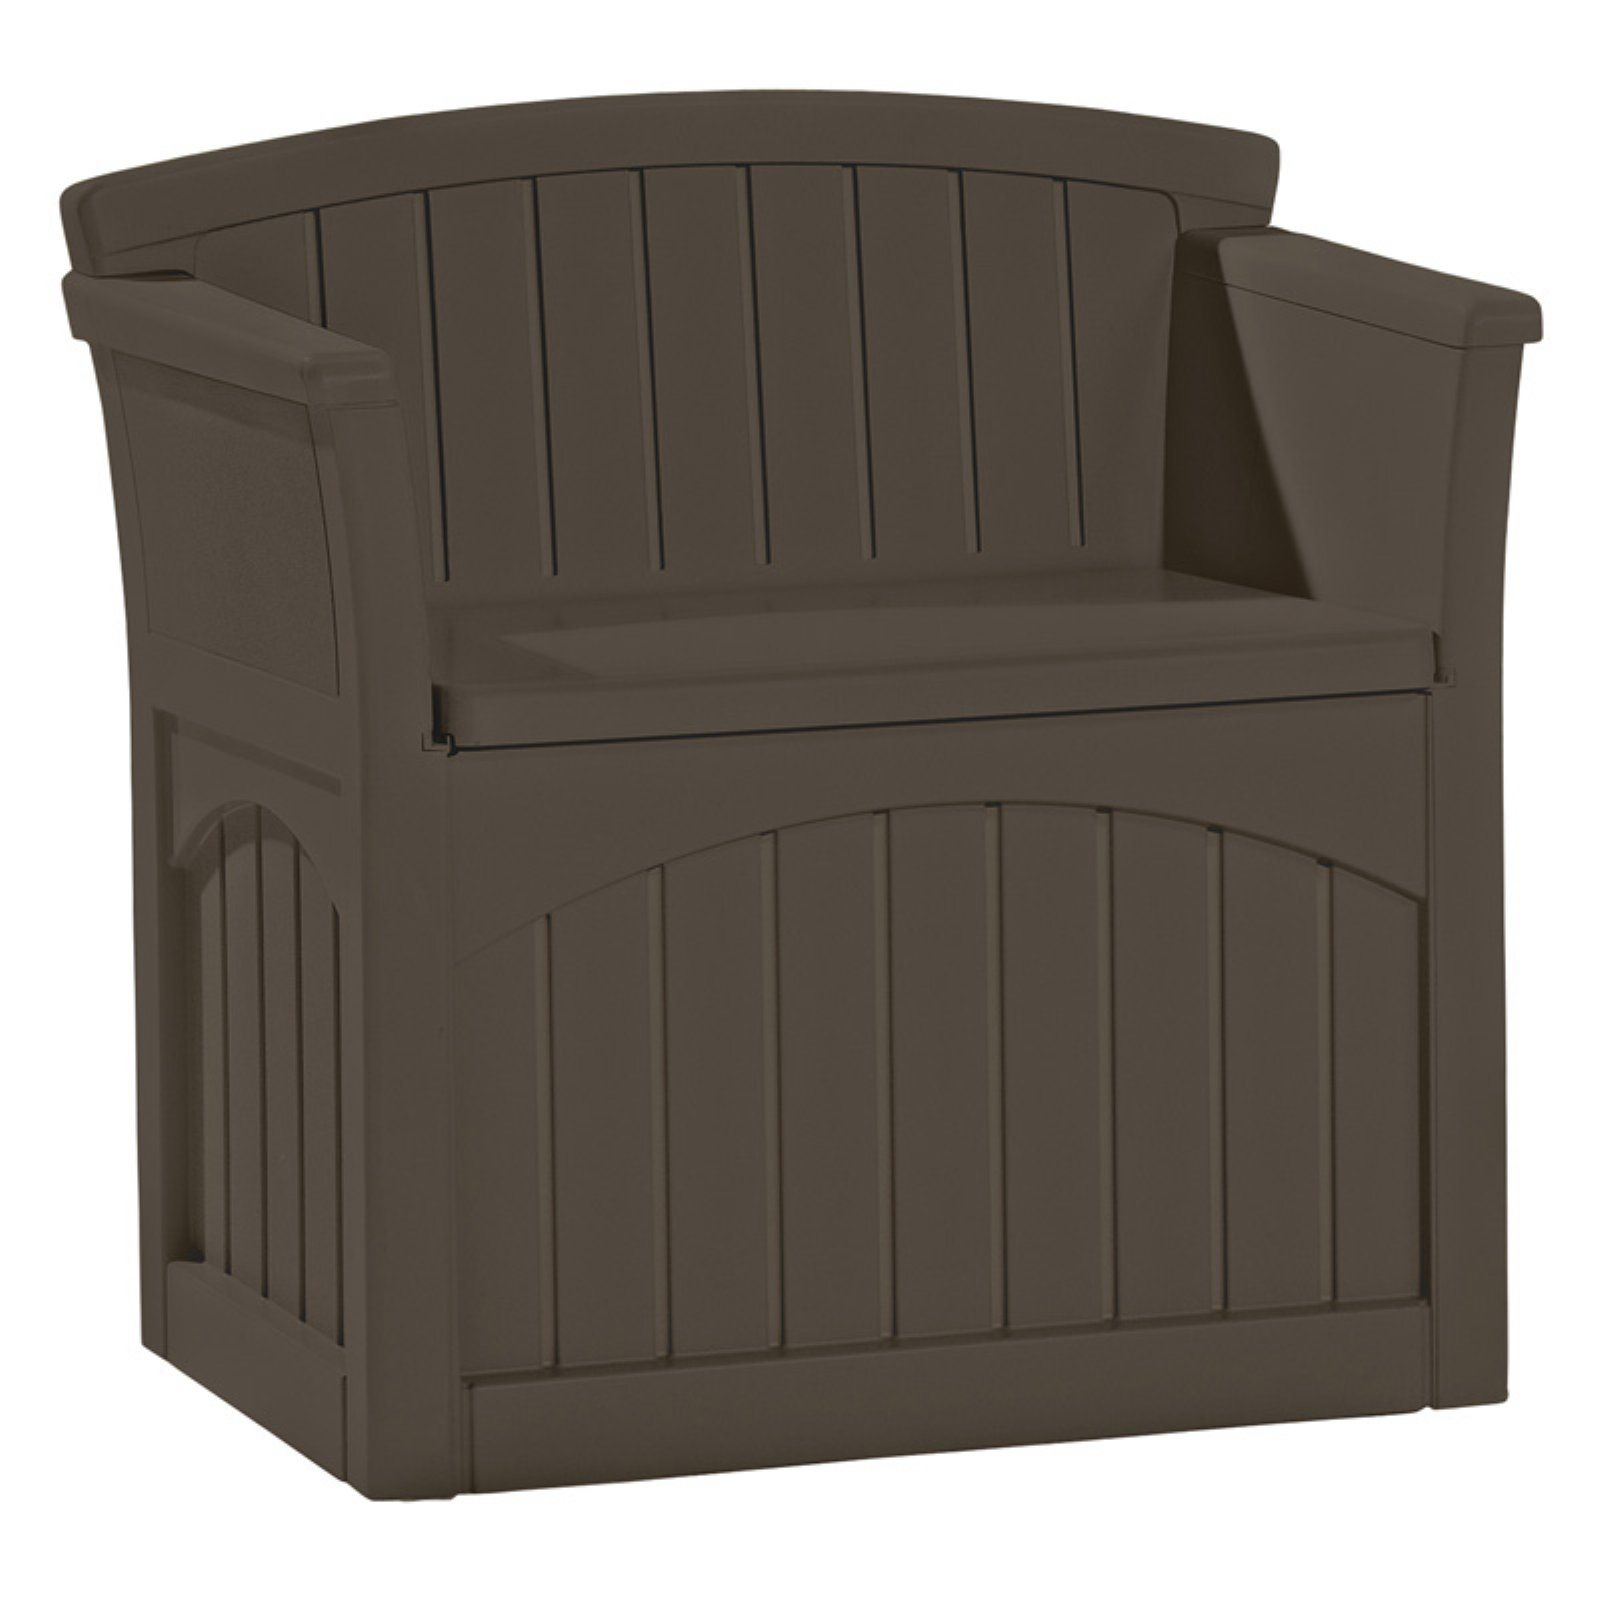 Suncast 31 Gallon Patio Seat, PB2600J